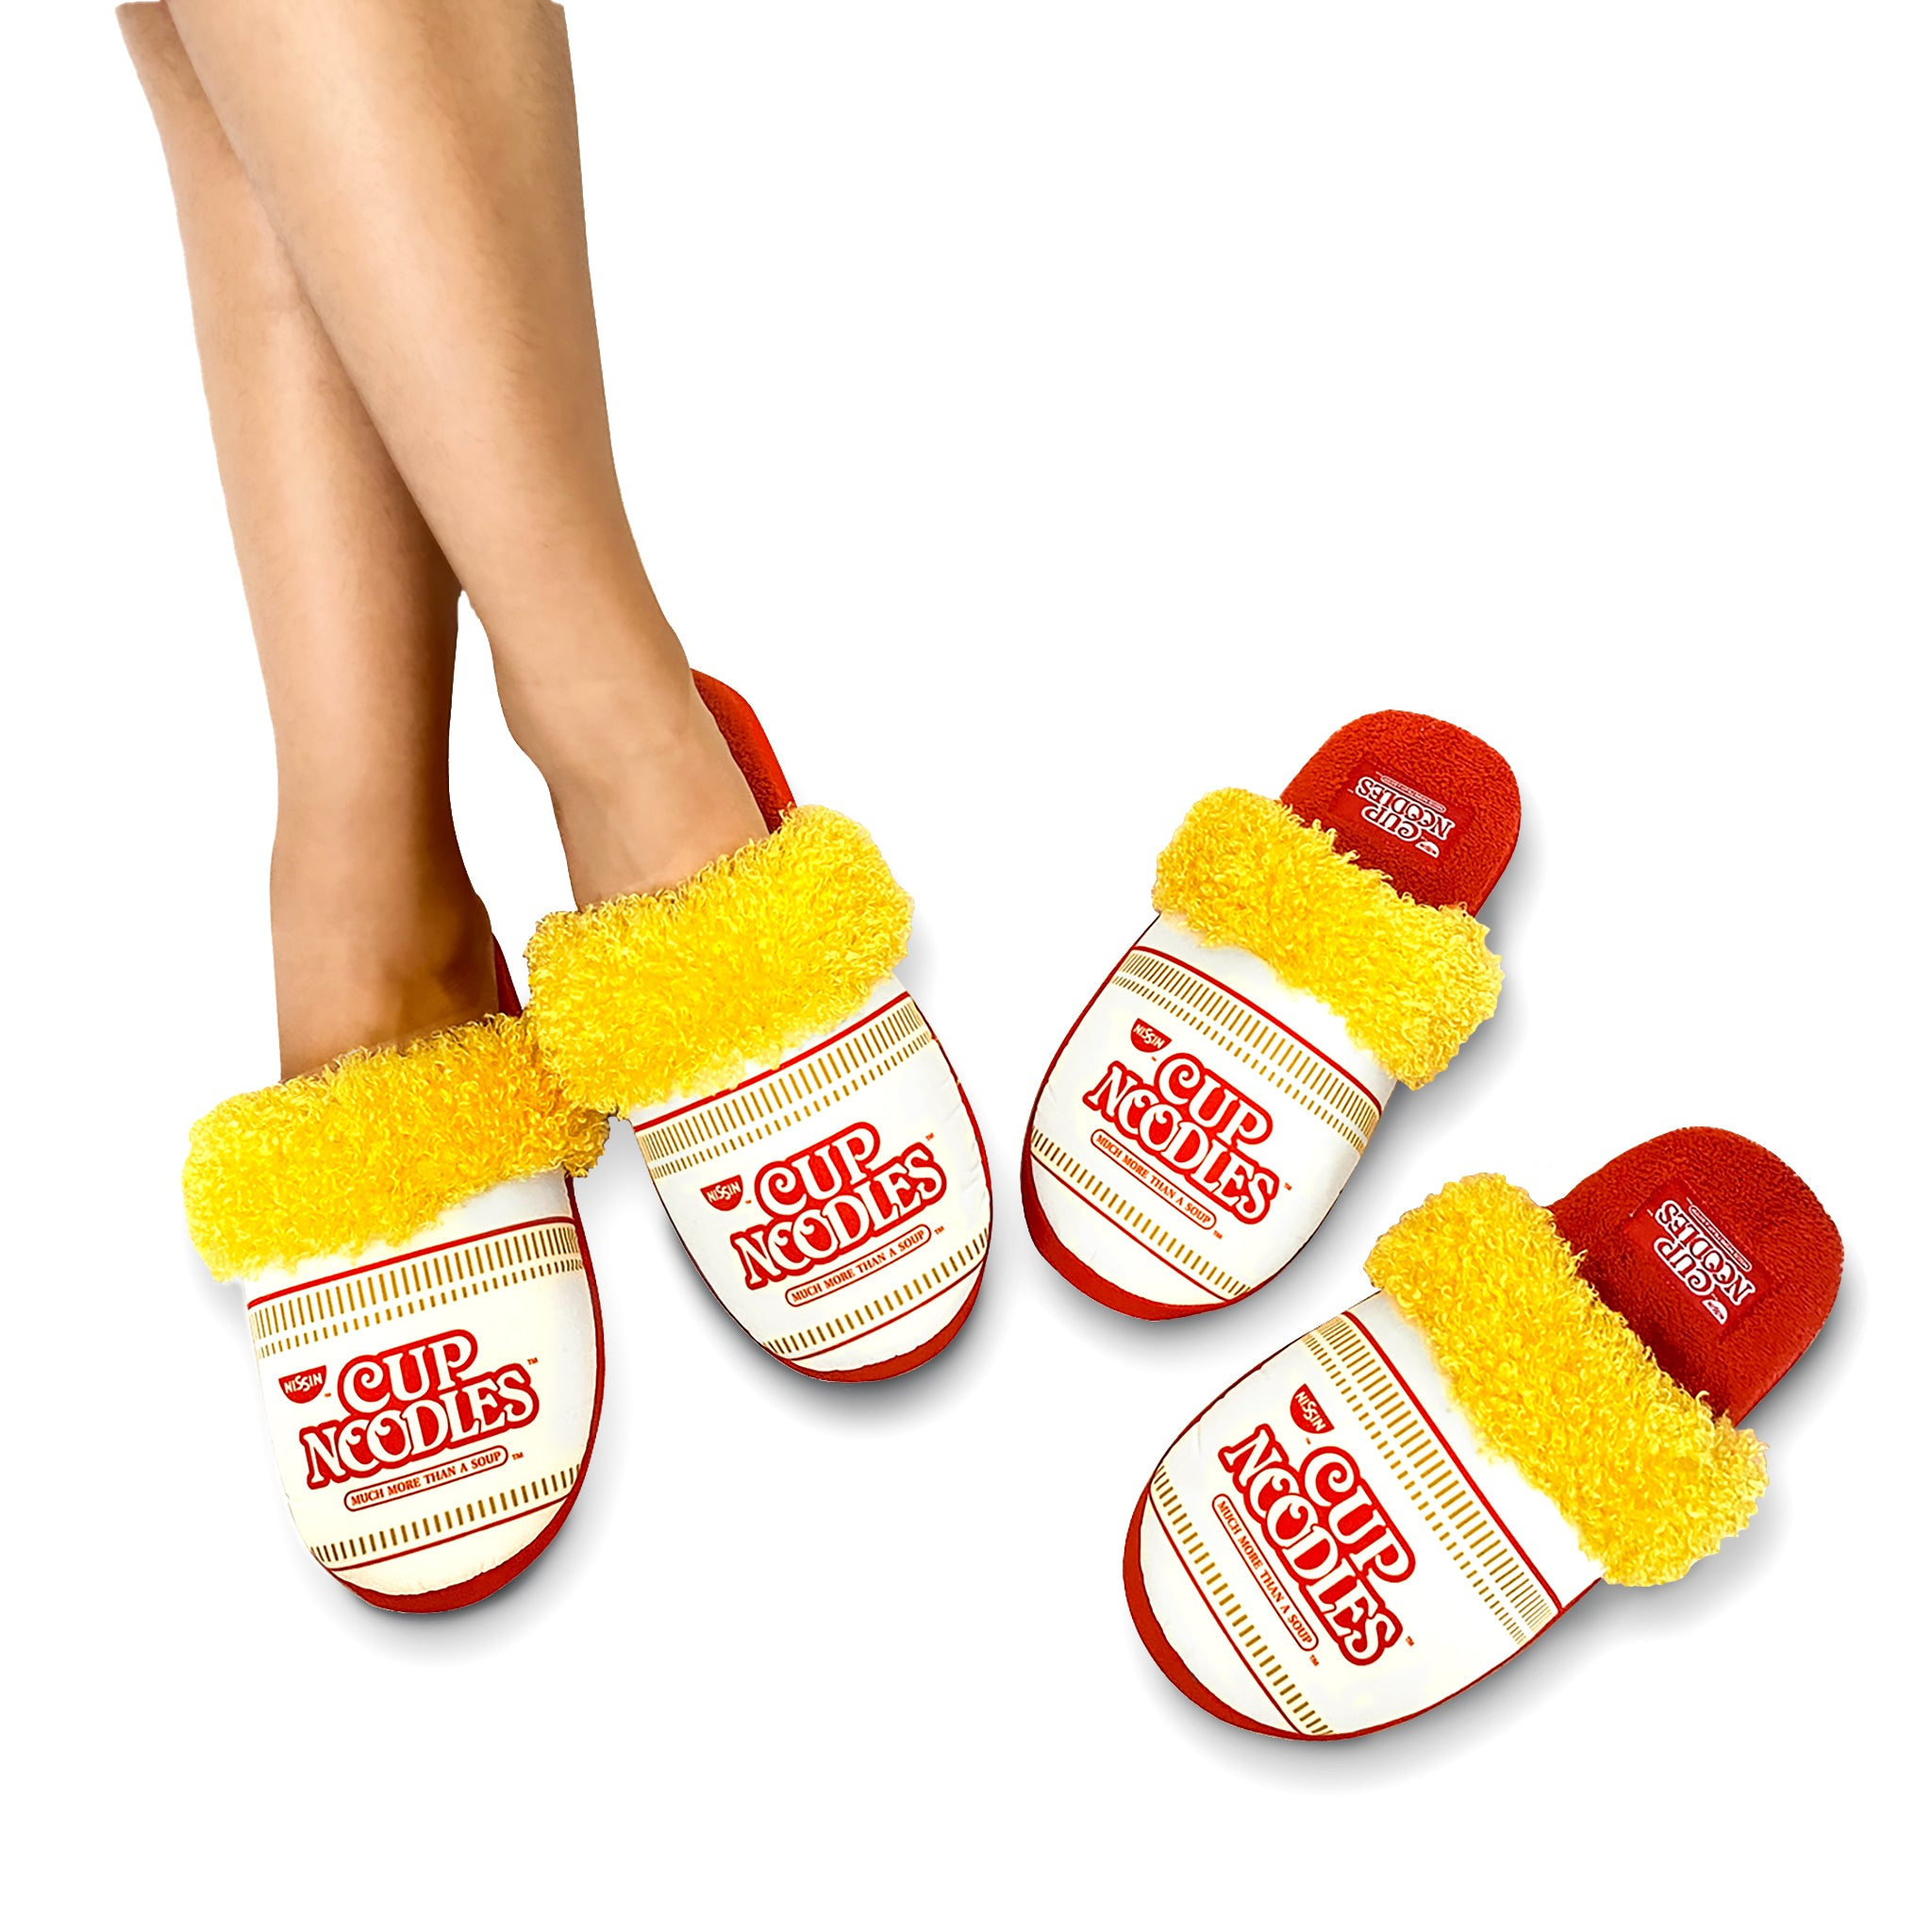 CUP NOODLES SLIPPERS